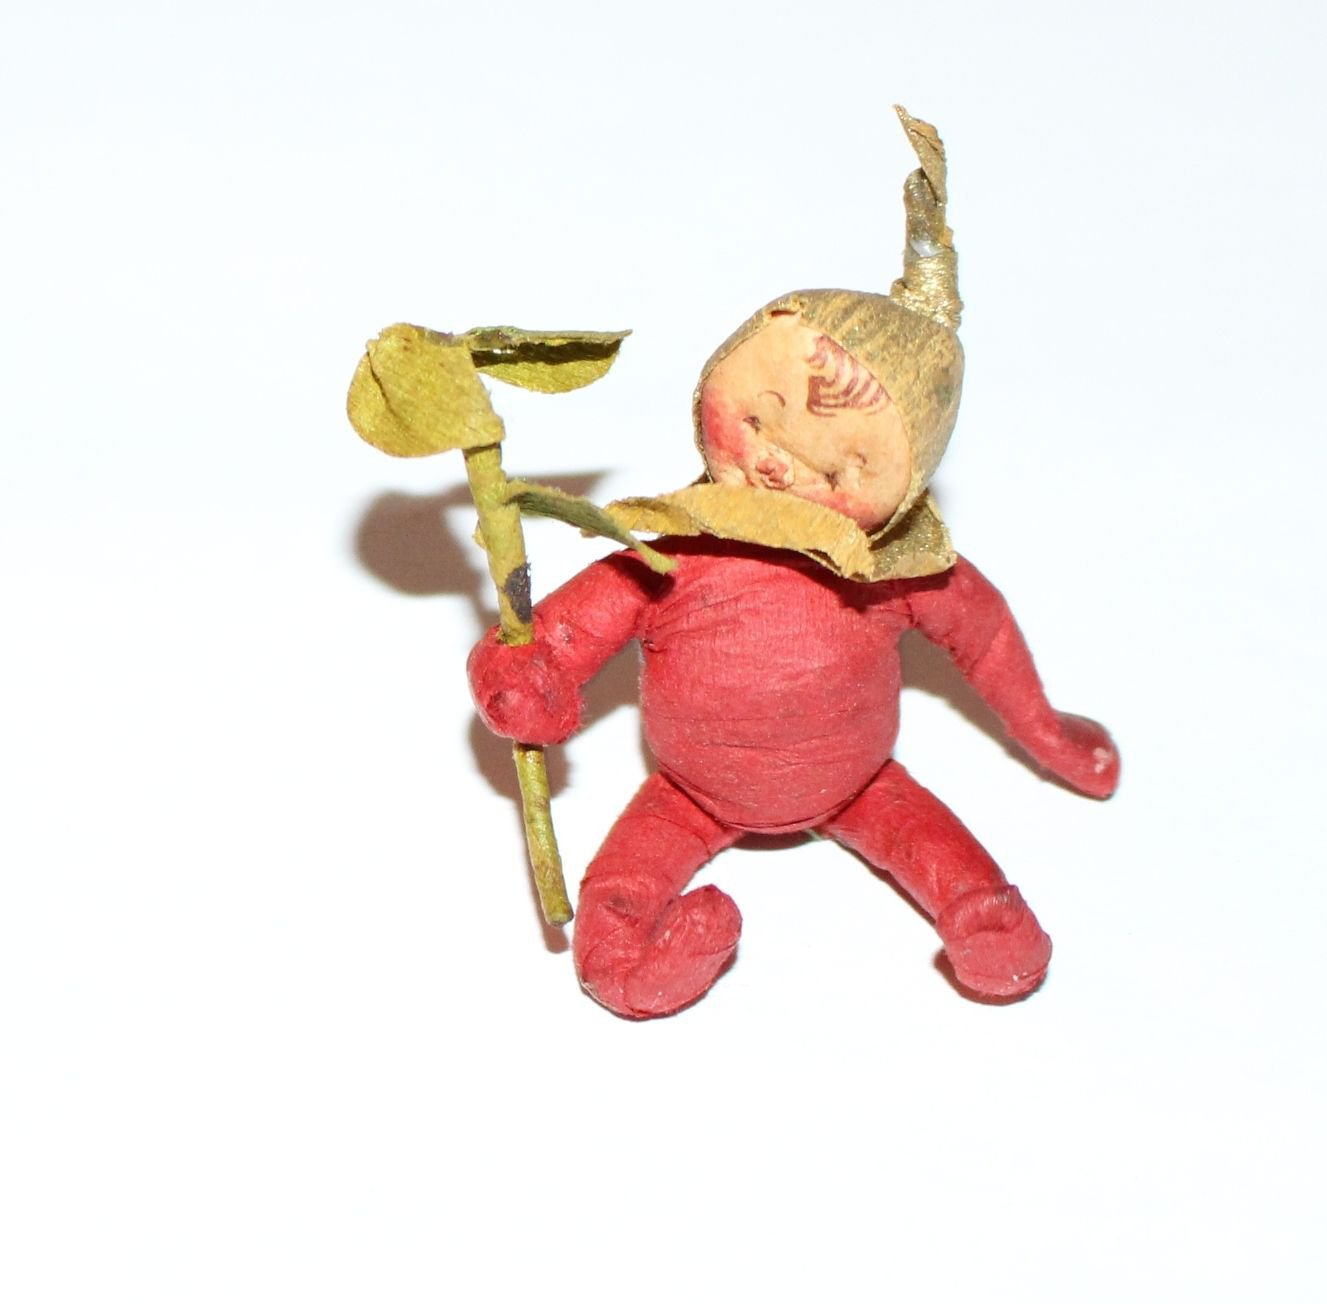 Dollhouse Miniature Figure Red Pixie Artist Made He's Holding a Branch